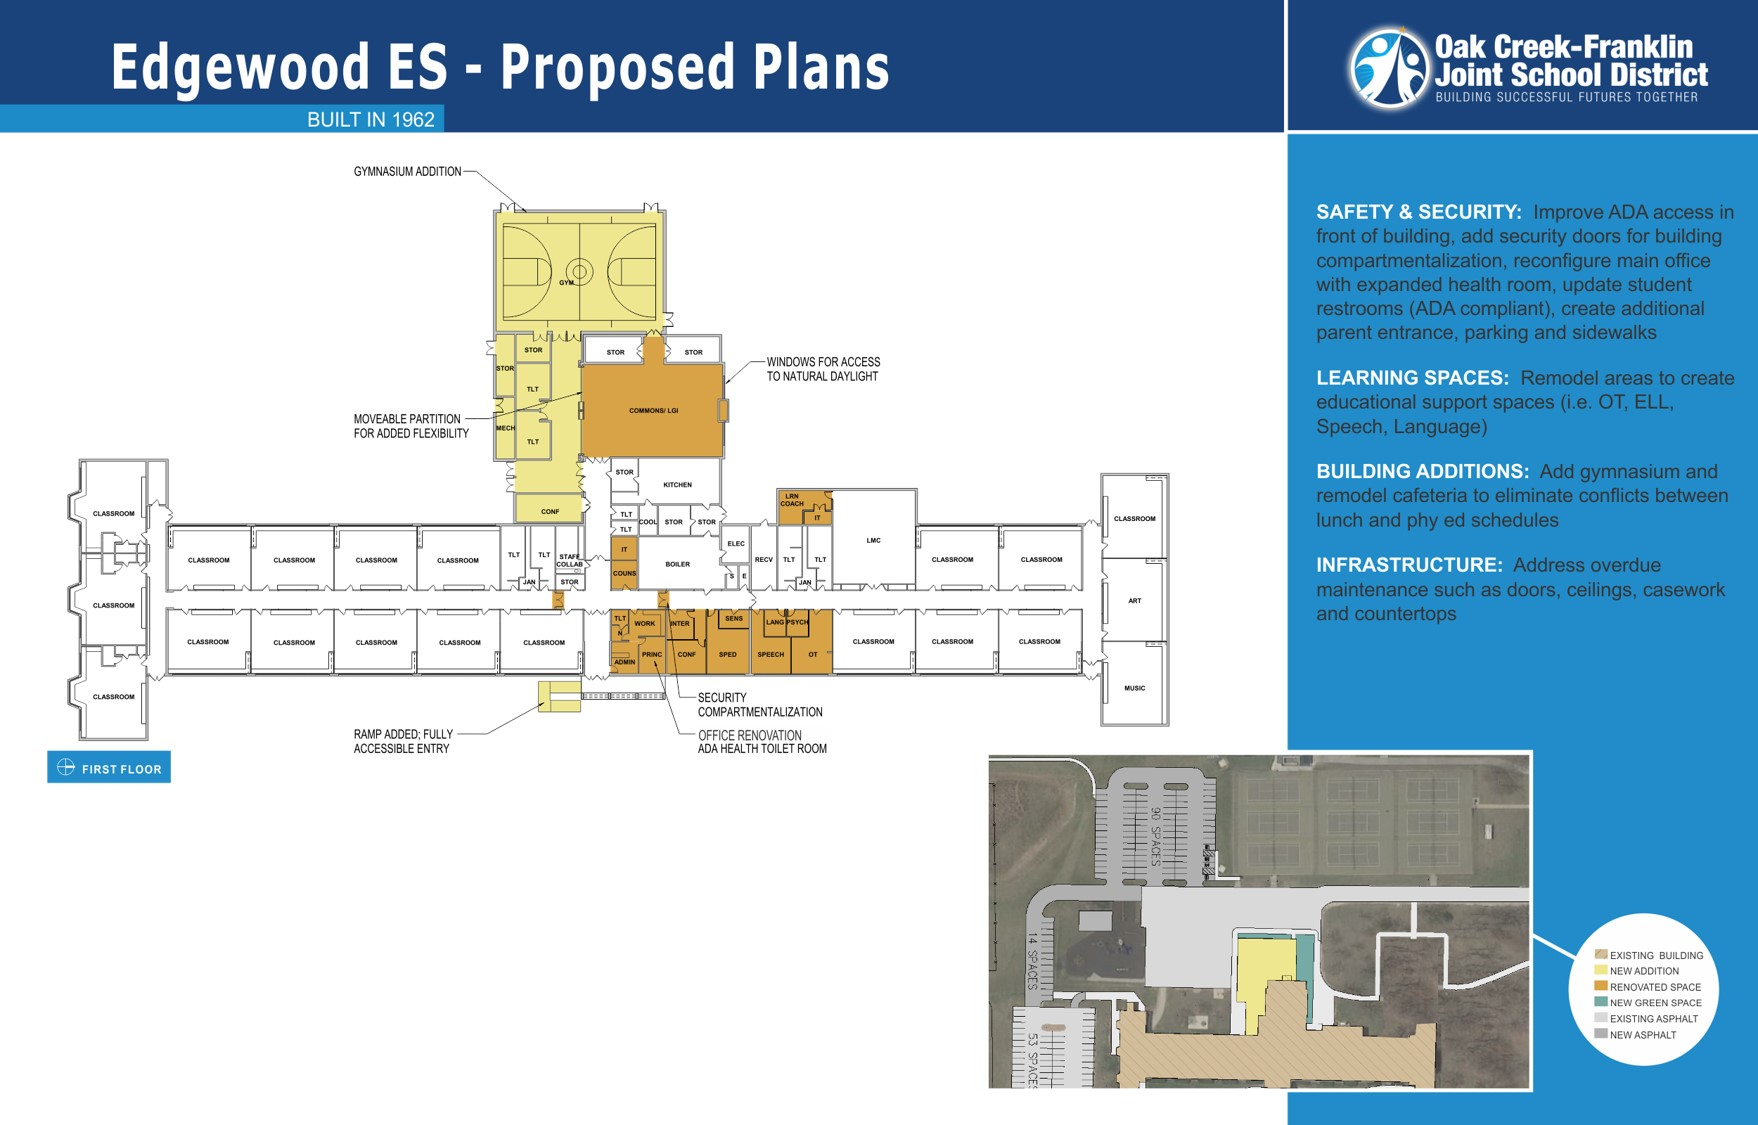 Edgewood Elementary proposed plans for 2018 referendum